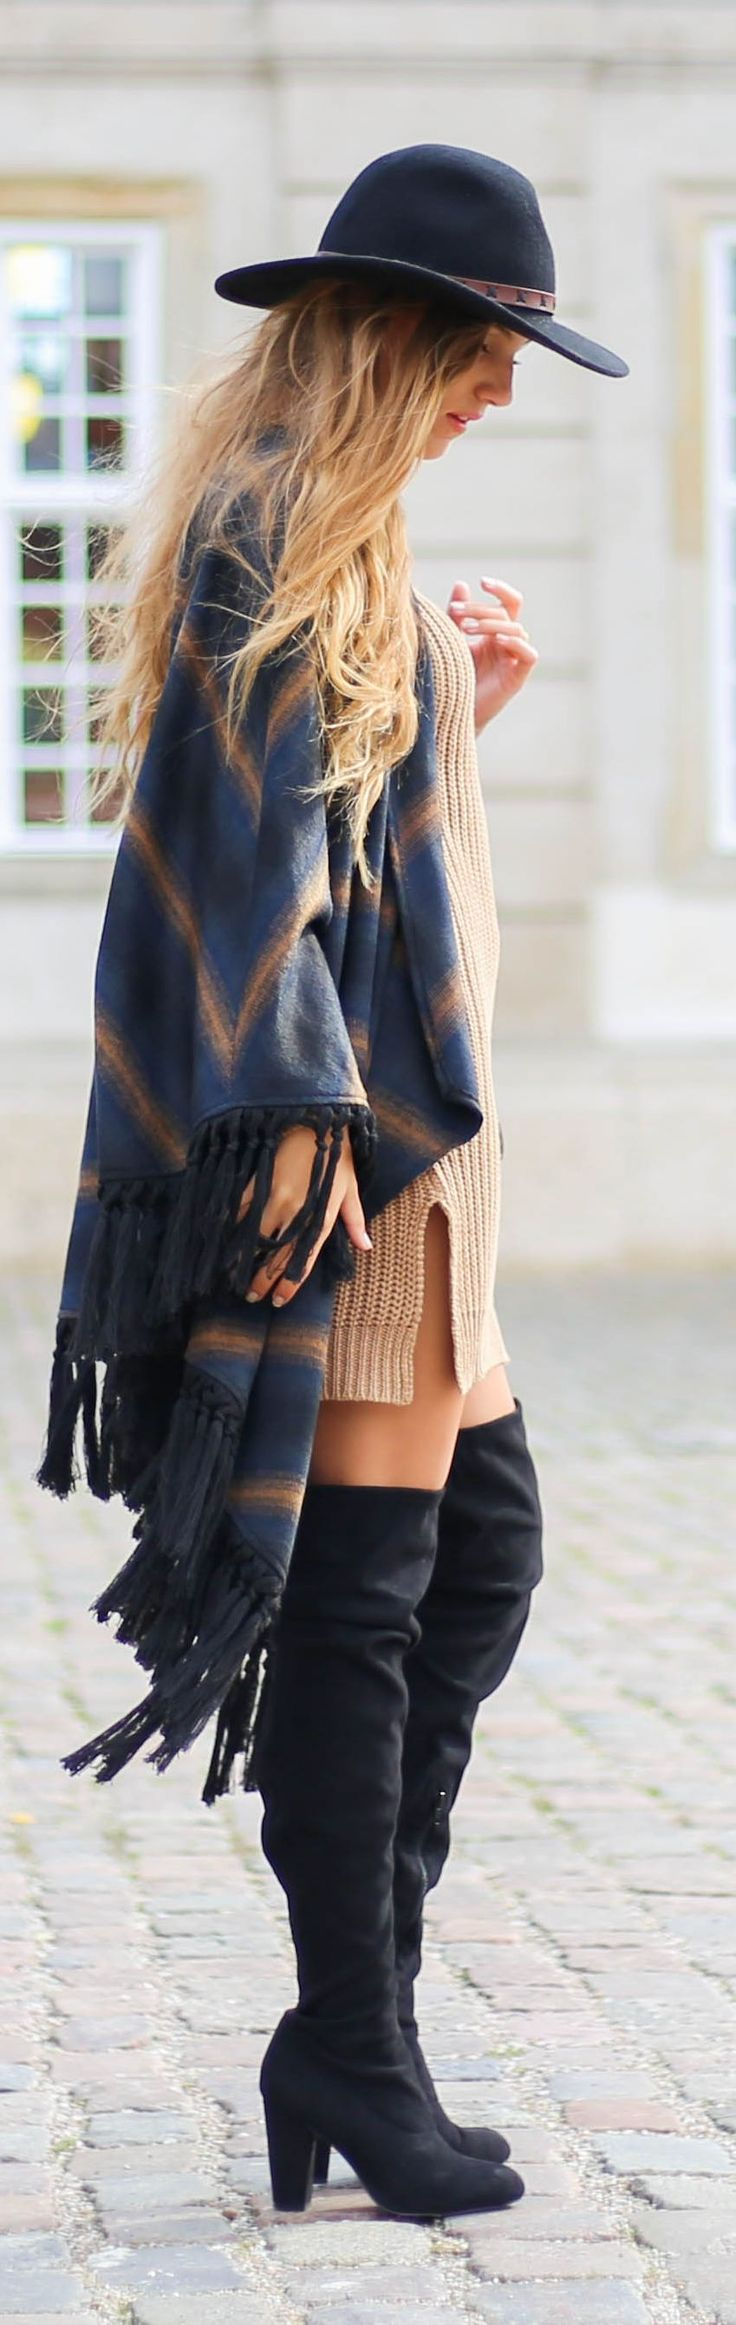 BOHO ❈ BABE . Blog By Sandra Black Suede O T K B Camel Sweater Dress Grey Fringed Poncho Fall Inspo